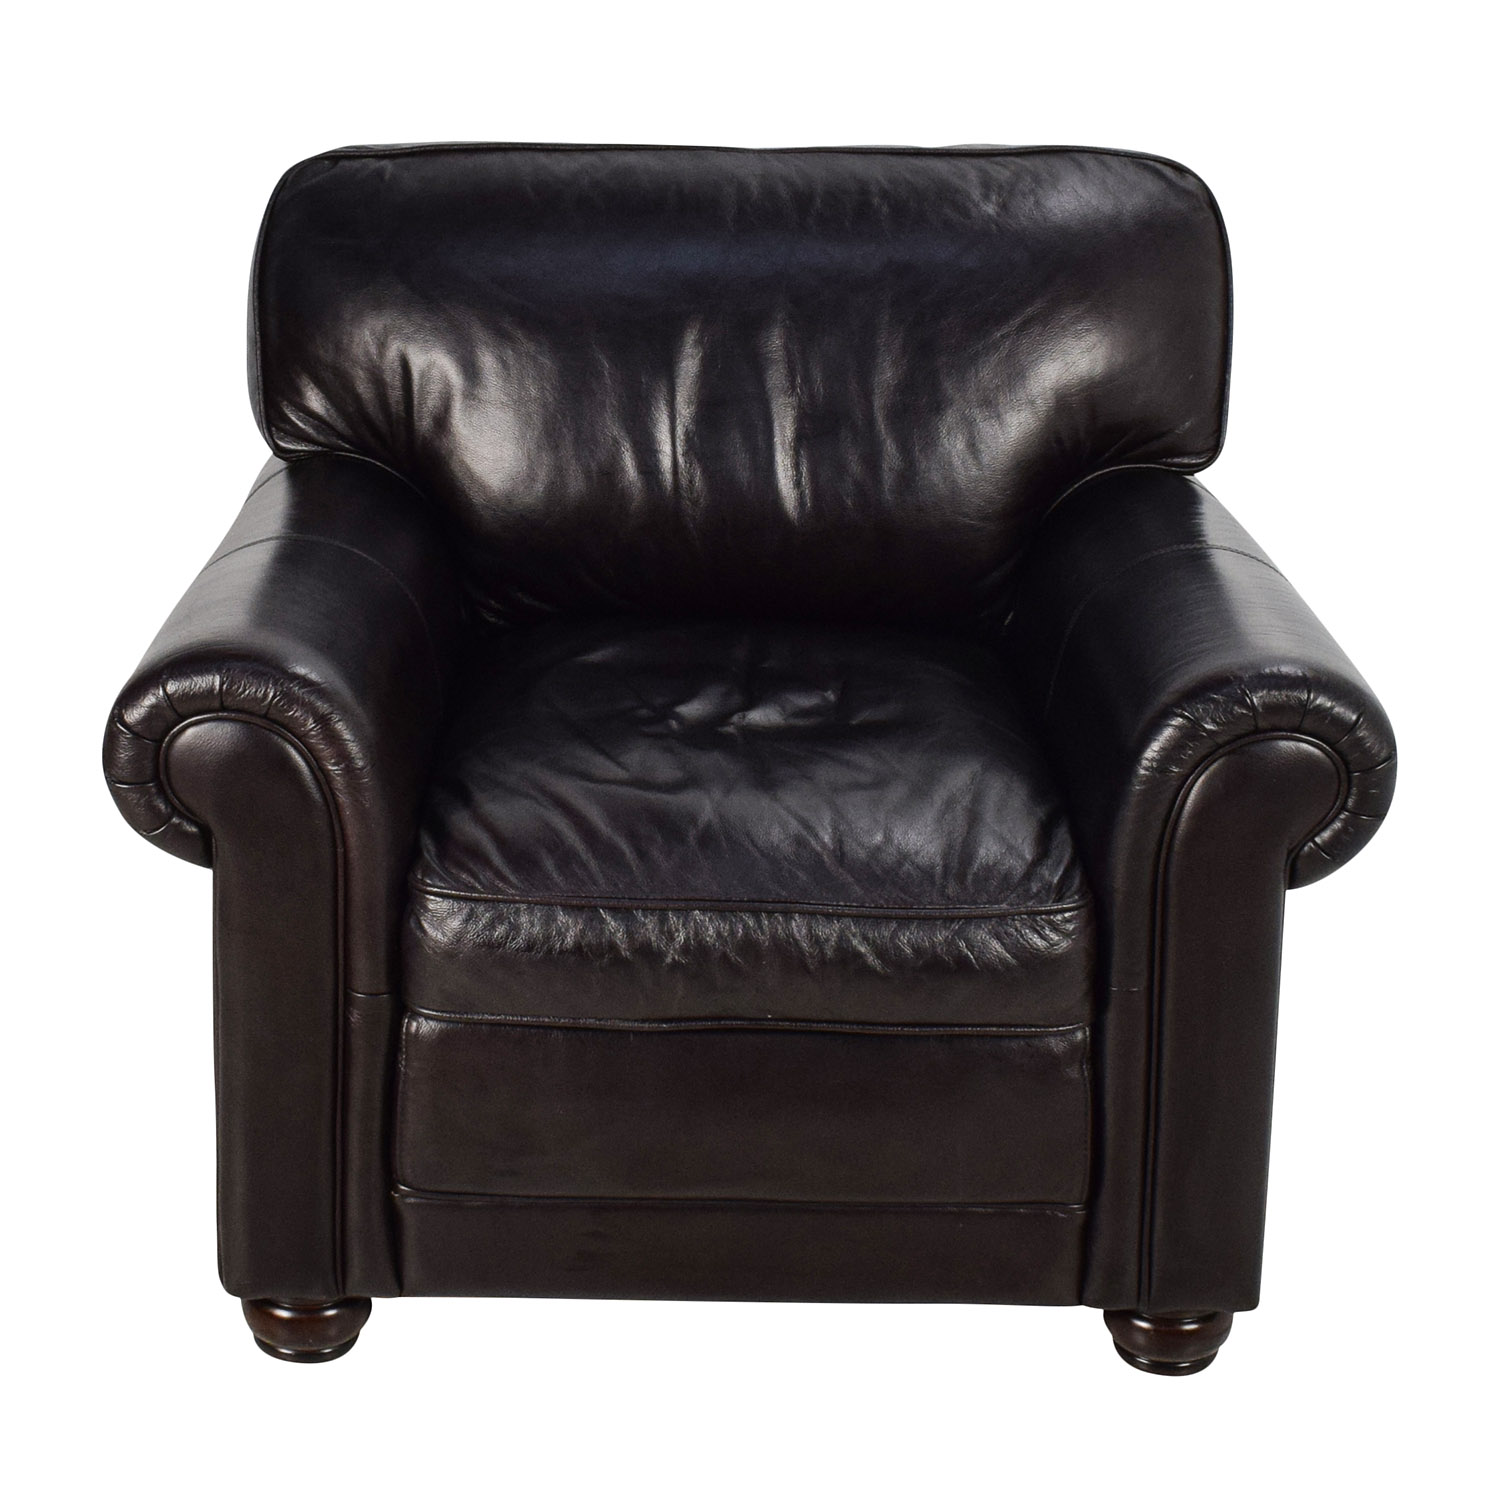 Bobs Furniture Bobs Furniture Leather Dark Brown Chair for sale